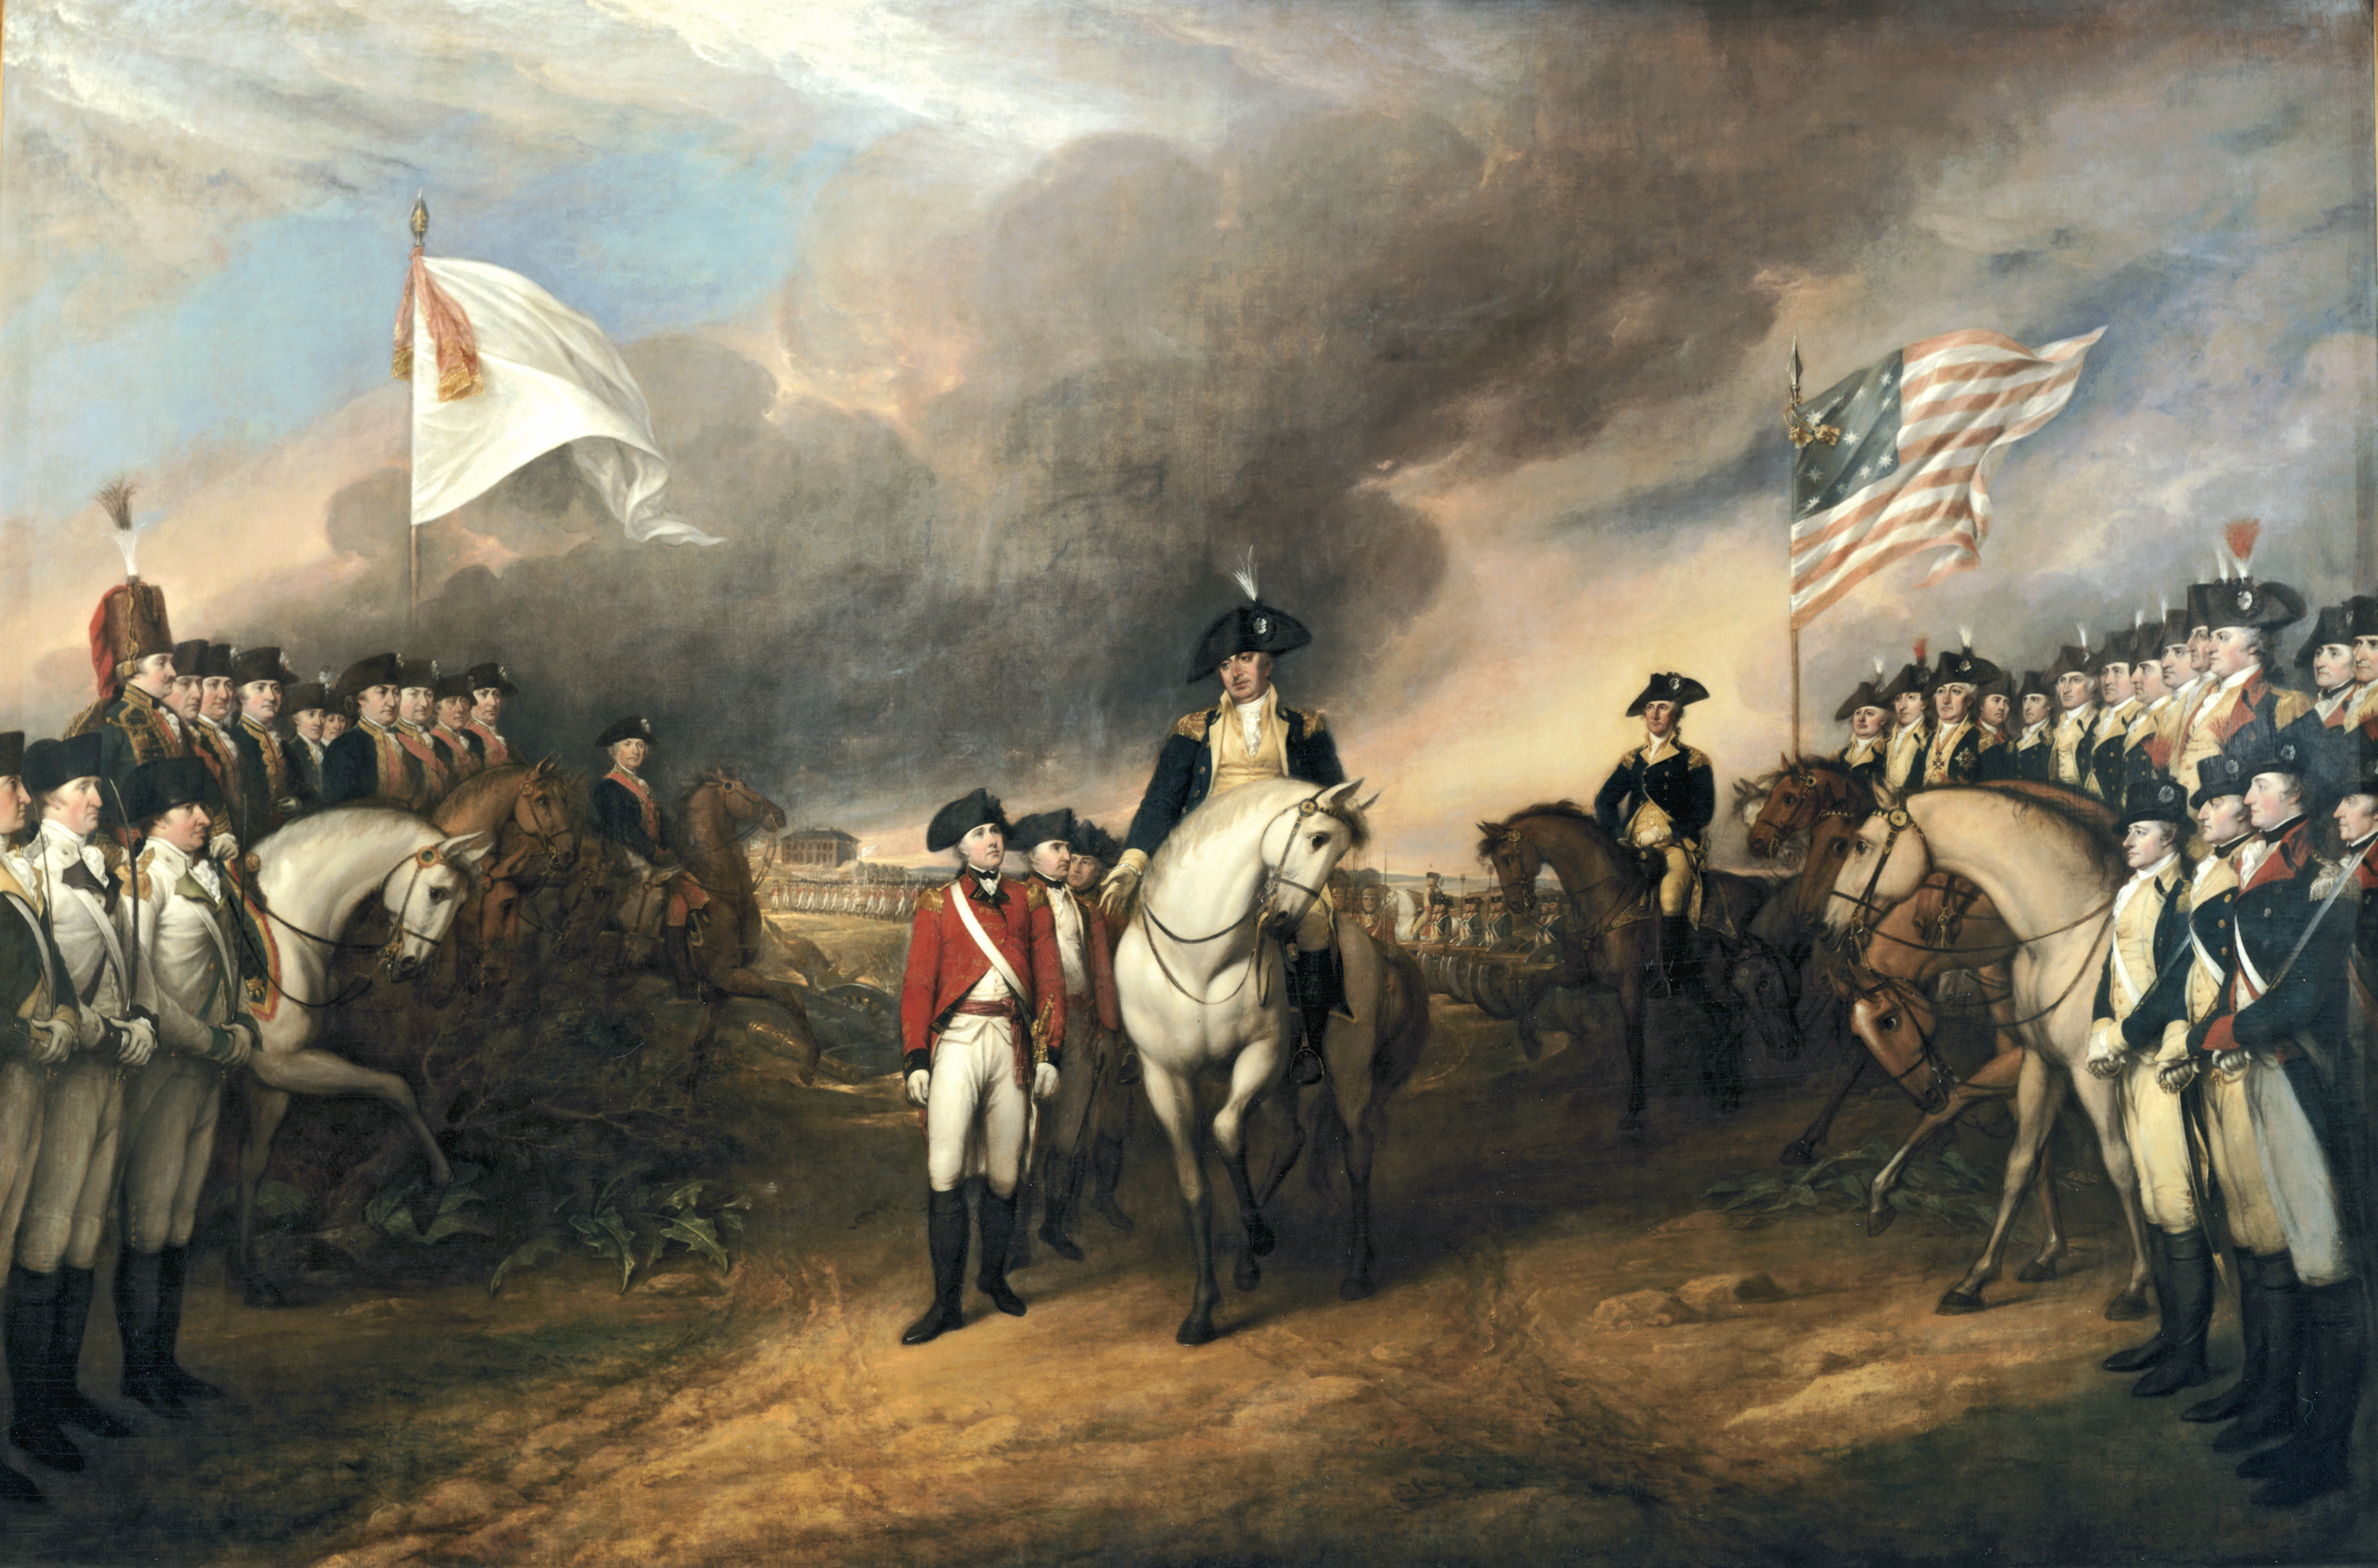 the american war of independence | Tumblr